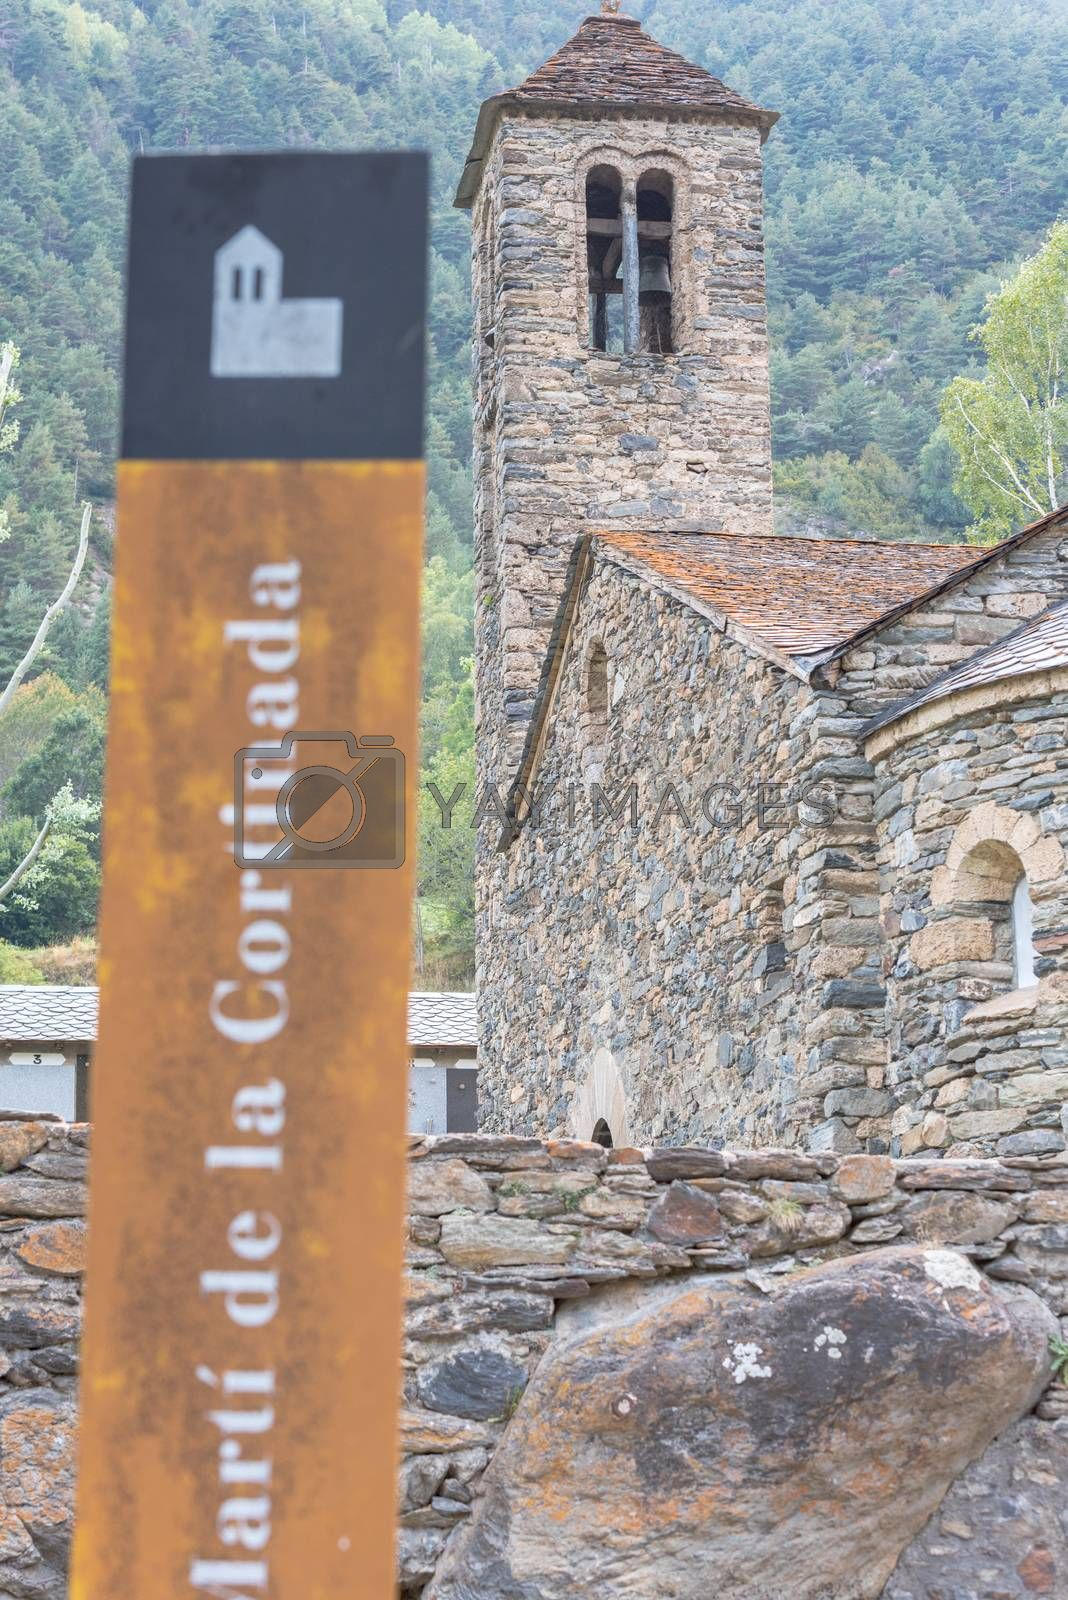 Ordino, Andorra: 26 August 2020: Church of Sant Marti de la Cortinada, Ordino, Andorra in Summer.